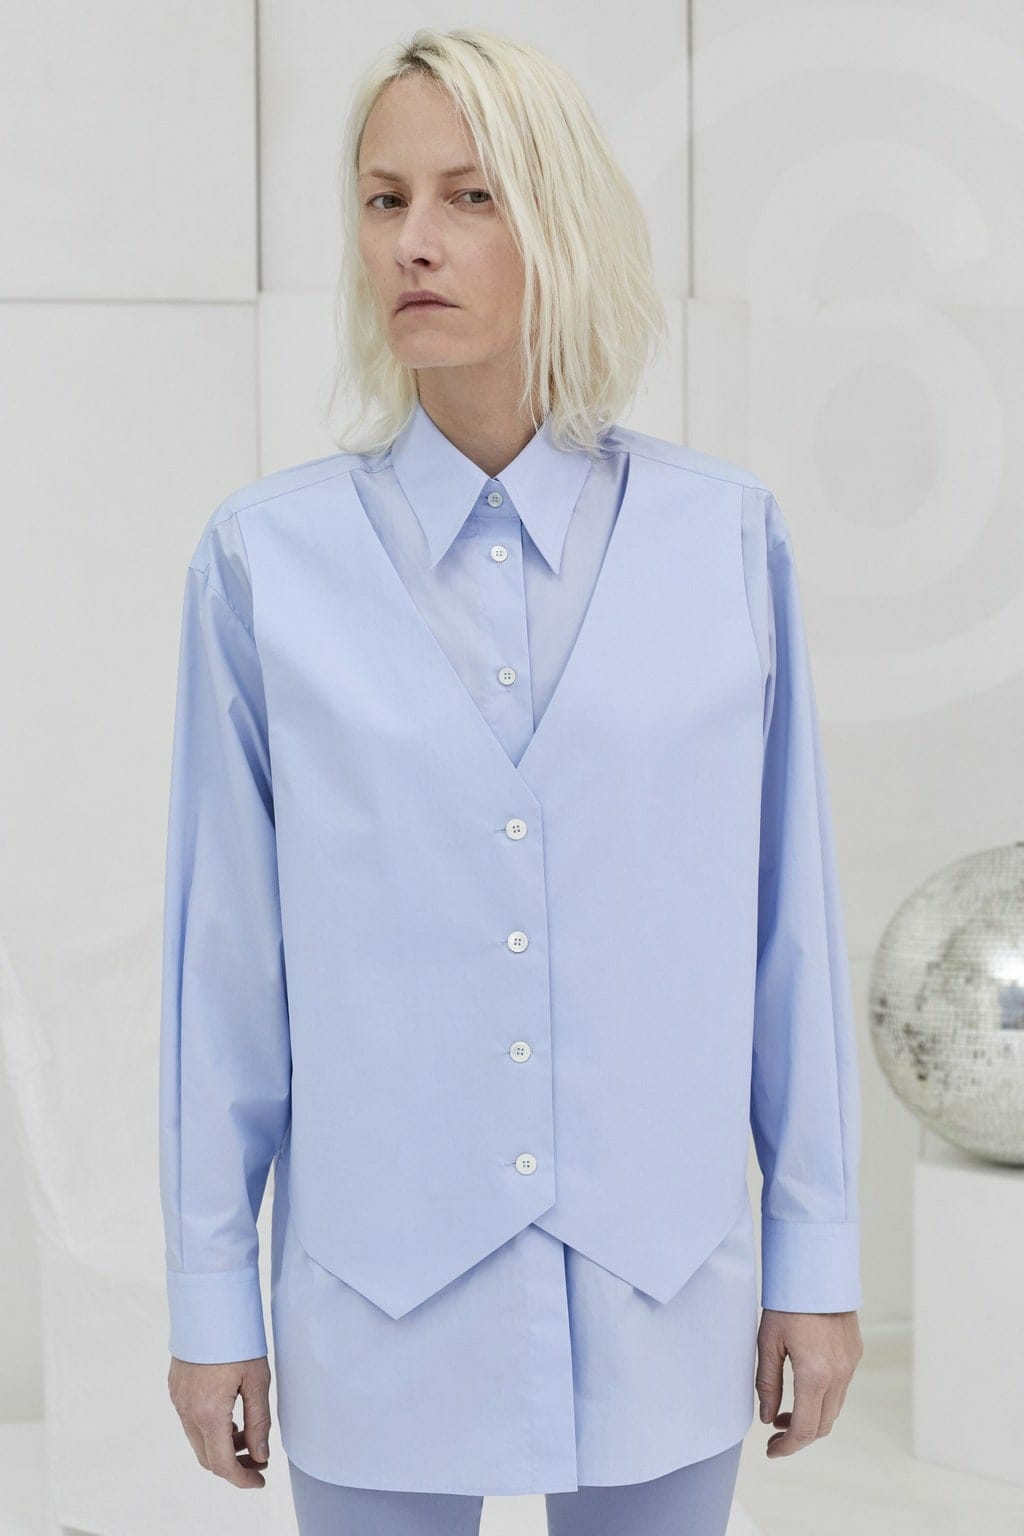 MM6 Maison Margiela Pre-Fall 2021 New York. RUNWAY MAGAZINE ® Collections. RUNWAY NOW / RUNWAY NEW